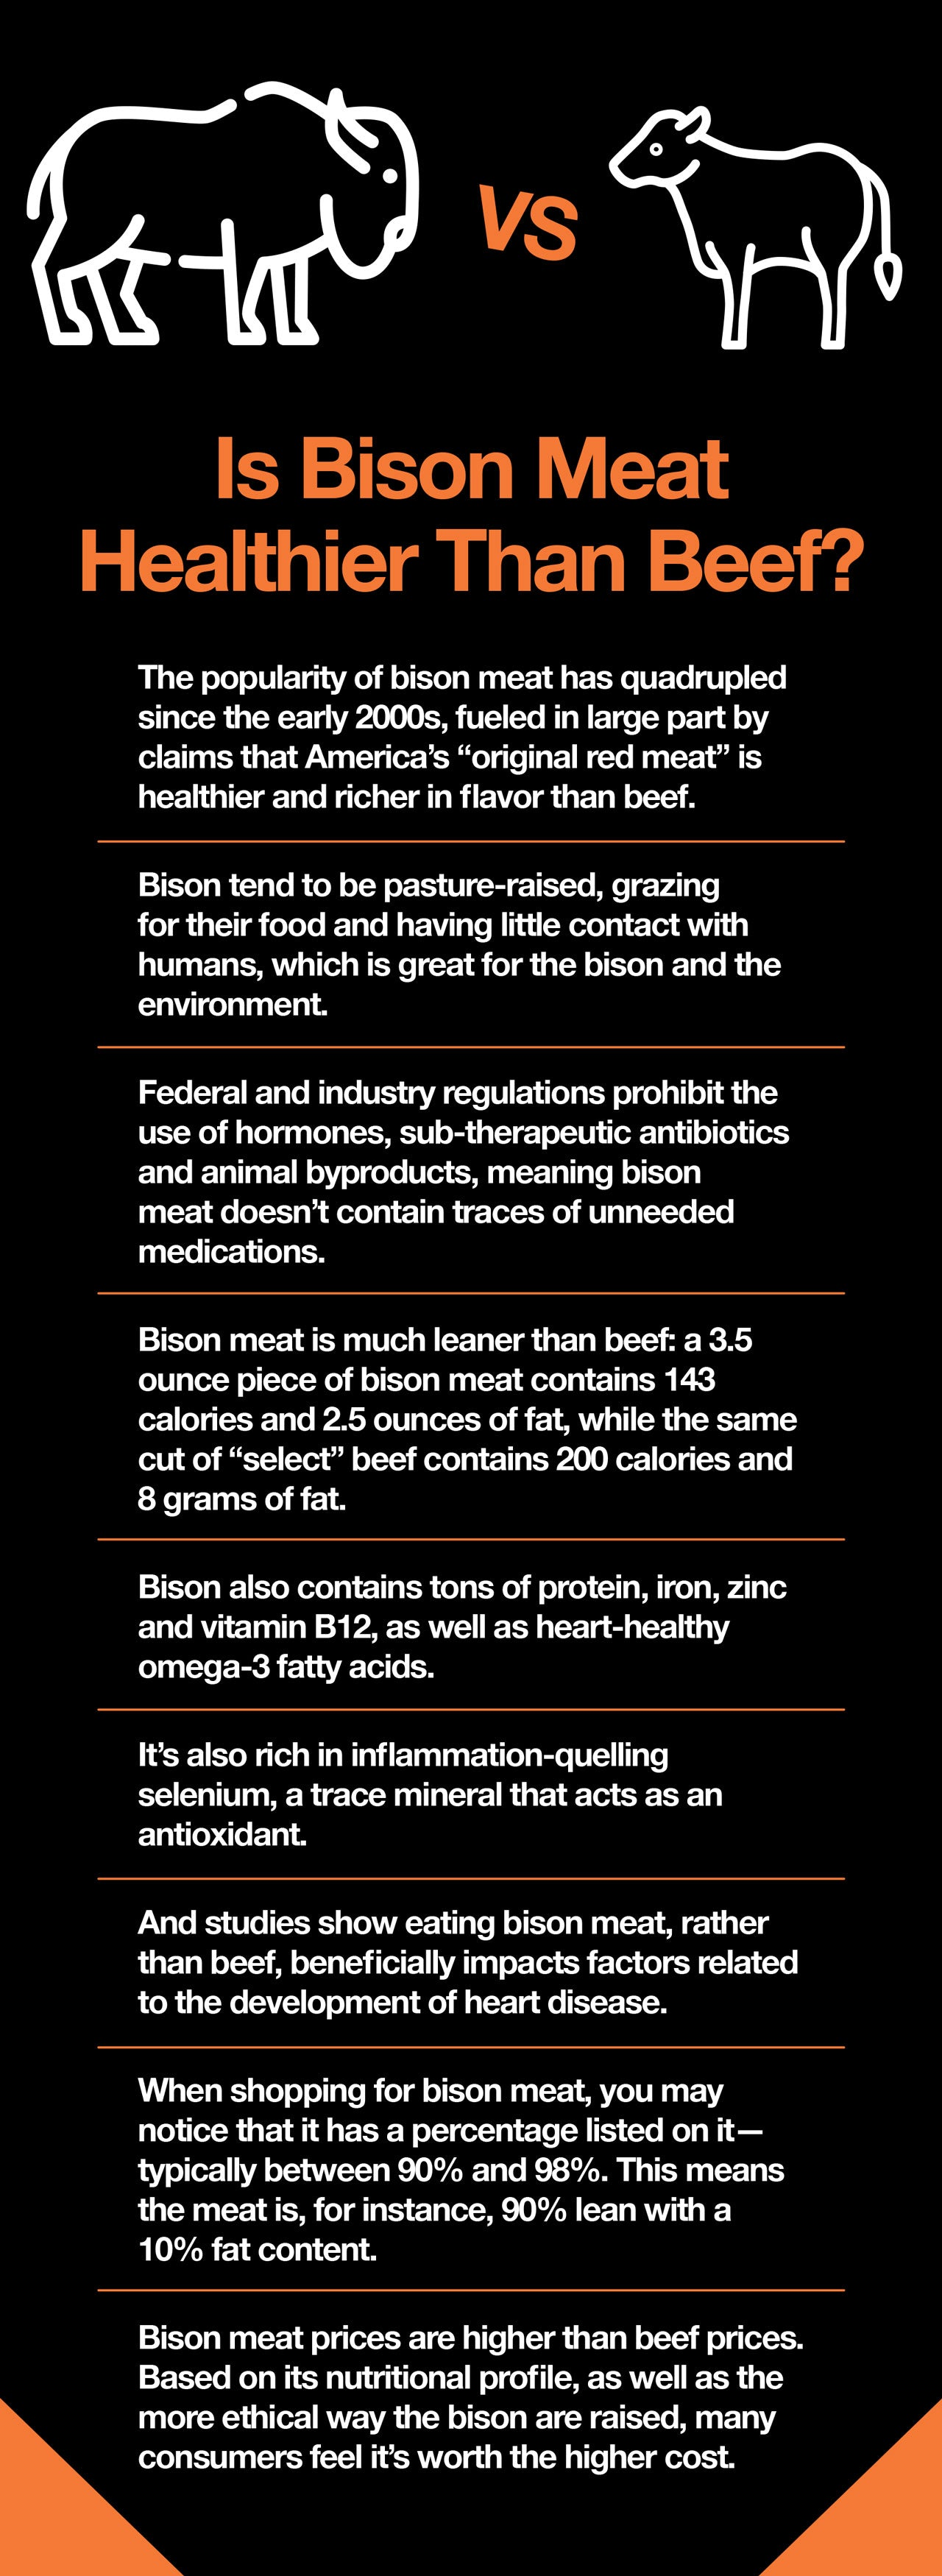 Is Bison Meat Healthier Than Beef?